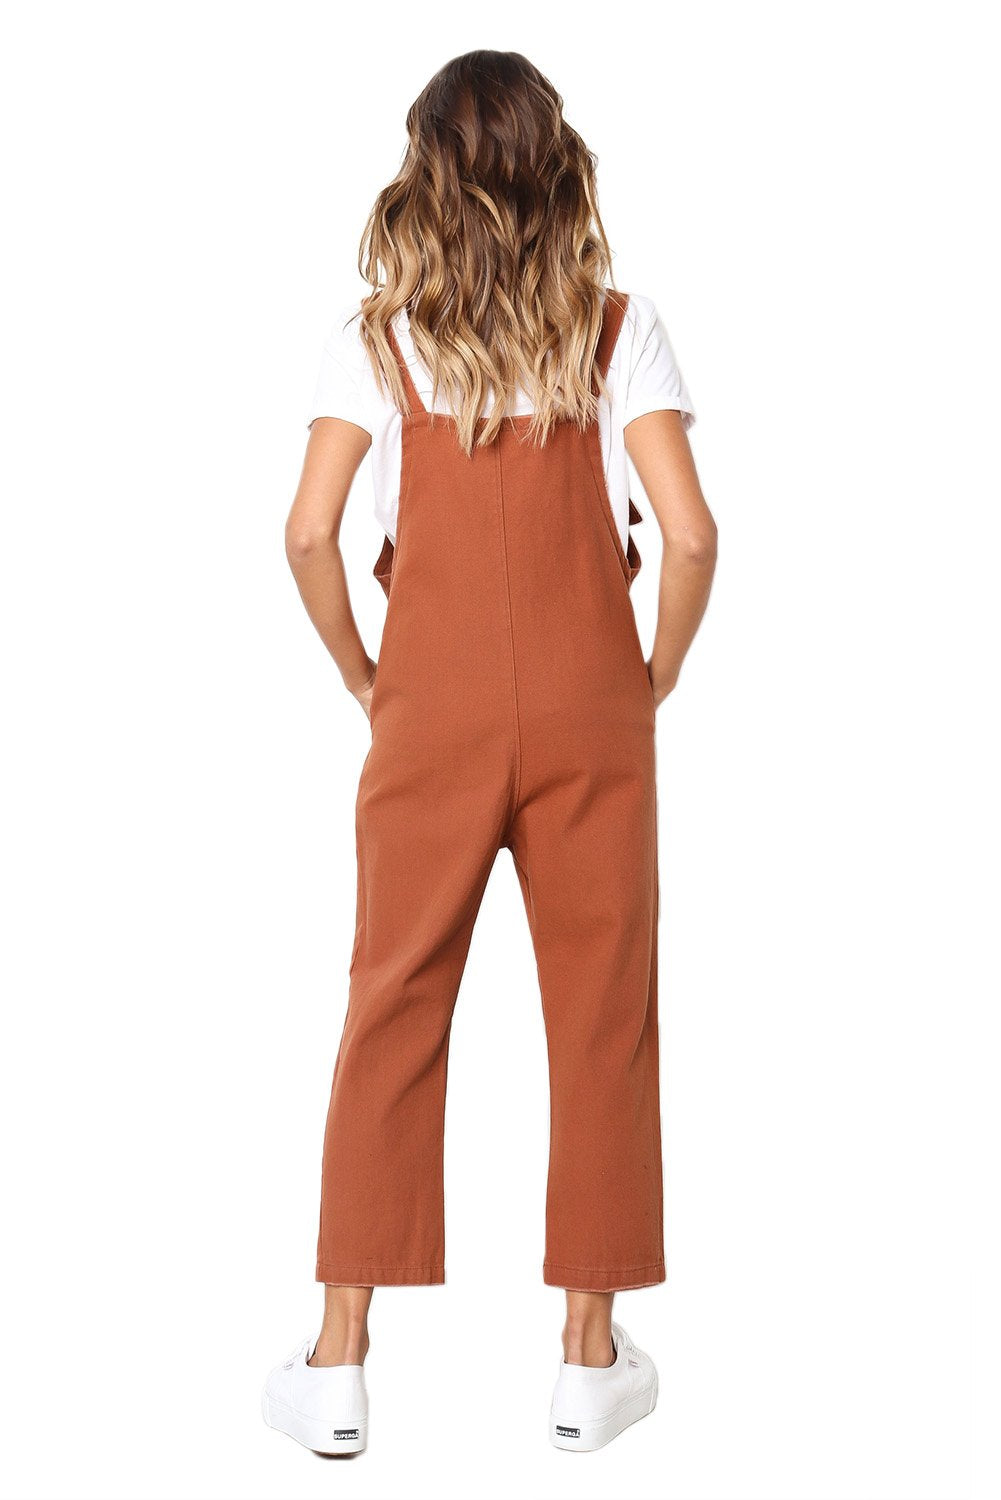 Orange Pockets Dungaree Jumpsuit-Outerwear, Jumpsuits & Rompers-Azura Exchange